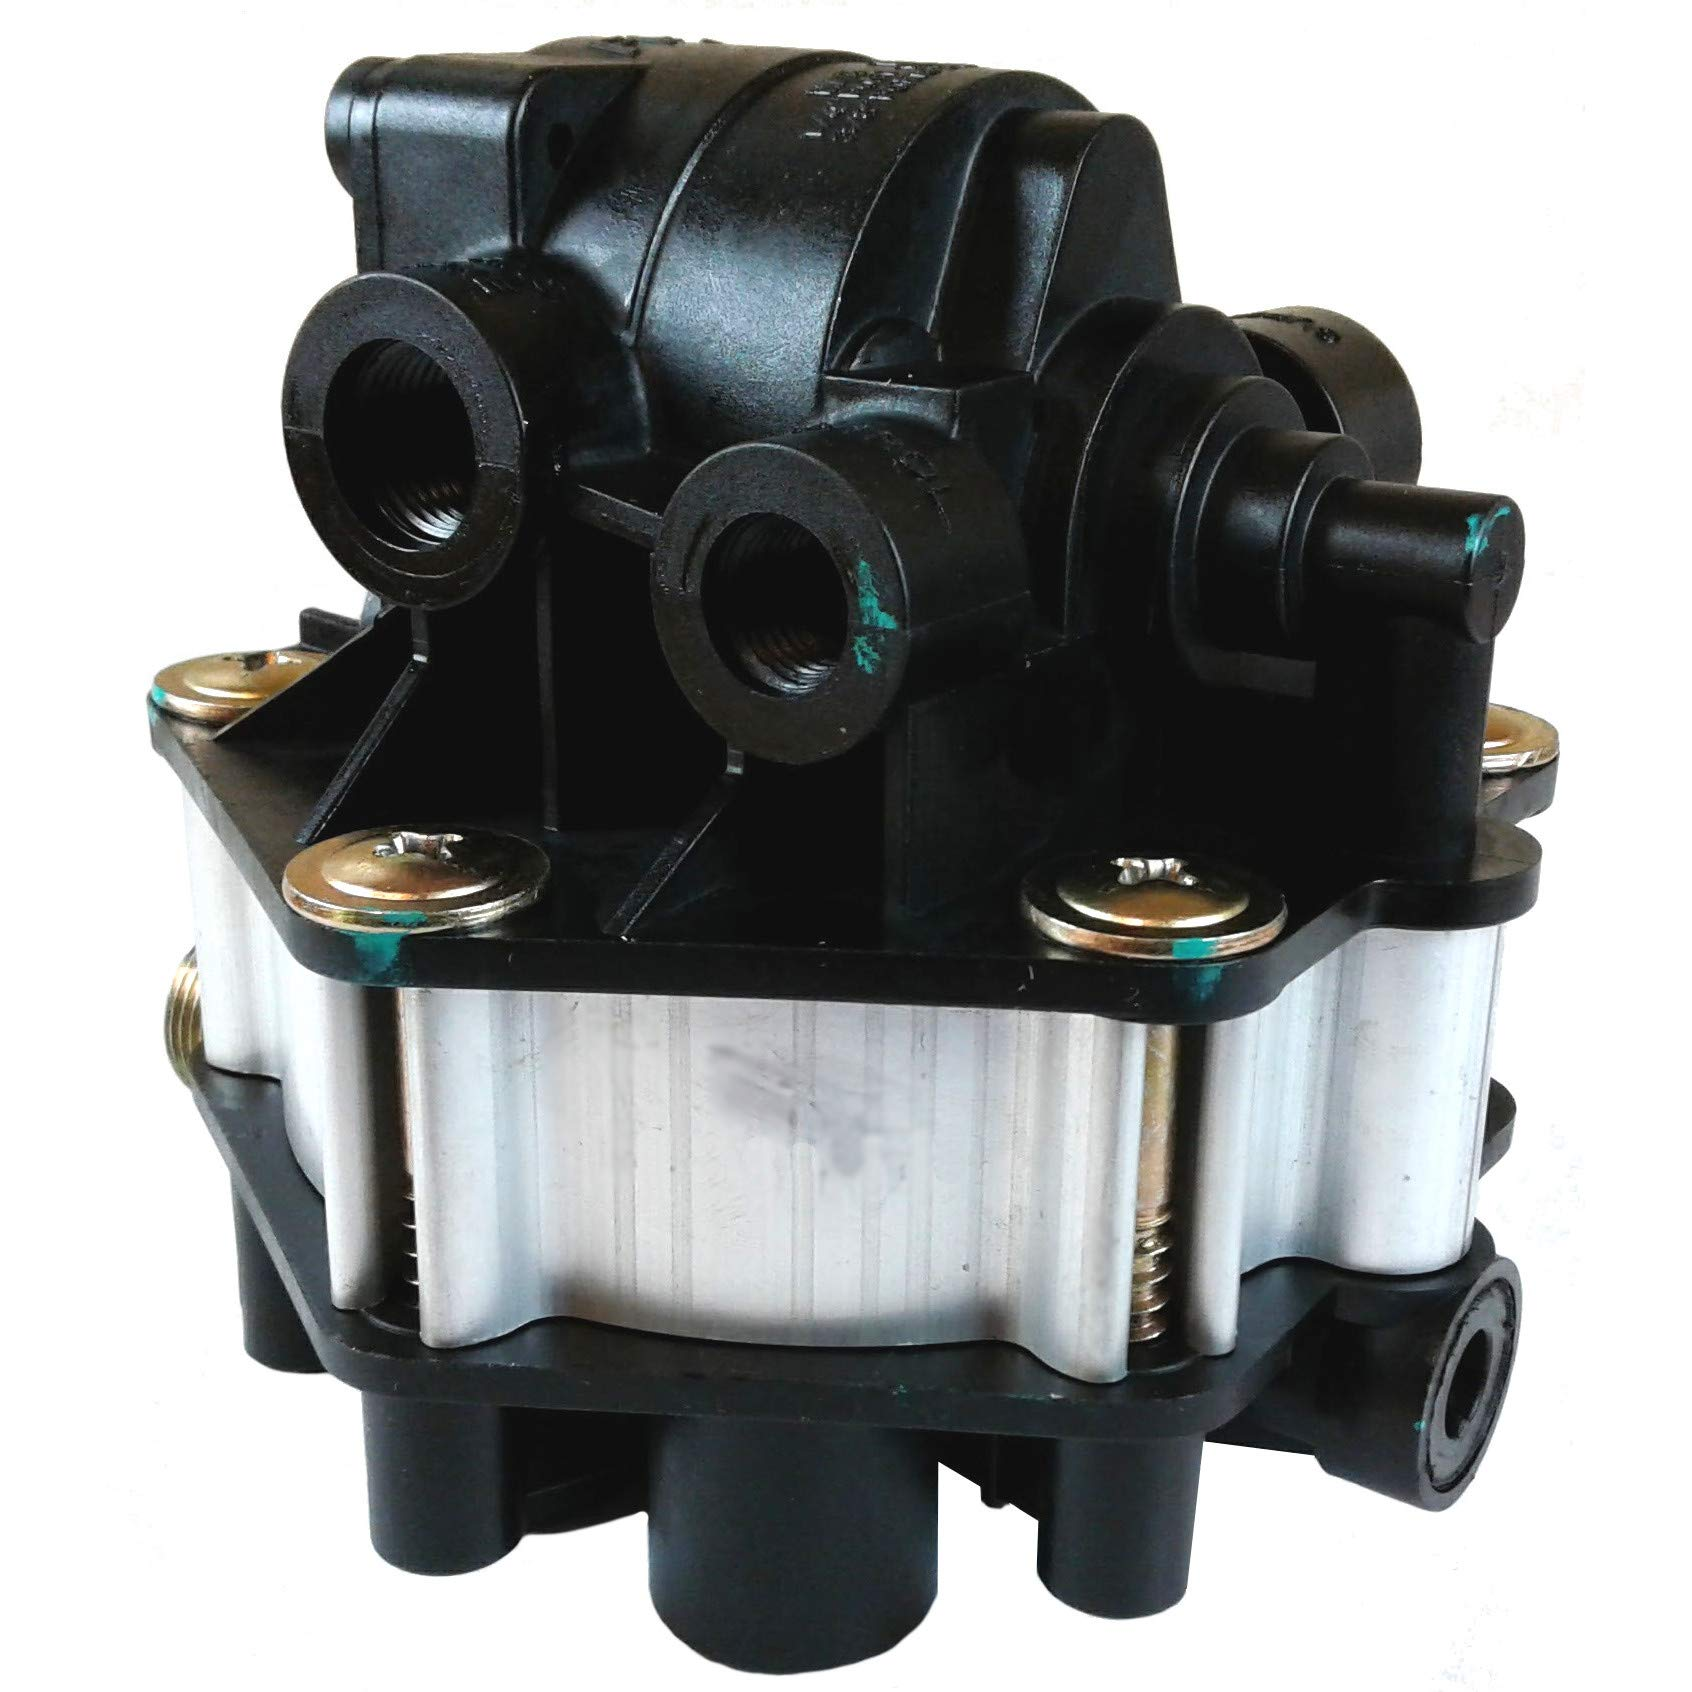 FF2 Full Function Trailer Brake Valve - 3/4'' Reservoir for Heavy Duty Big Rigs by Brianna Auto Parts (BAP) (Image #1)